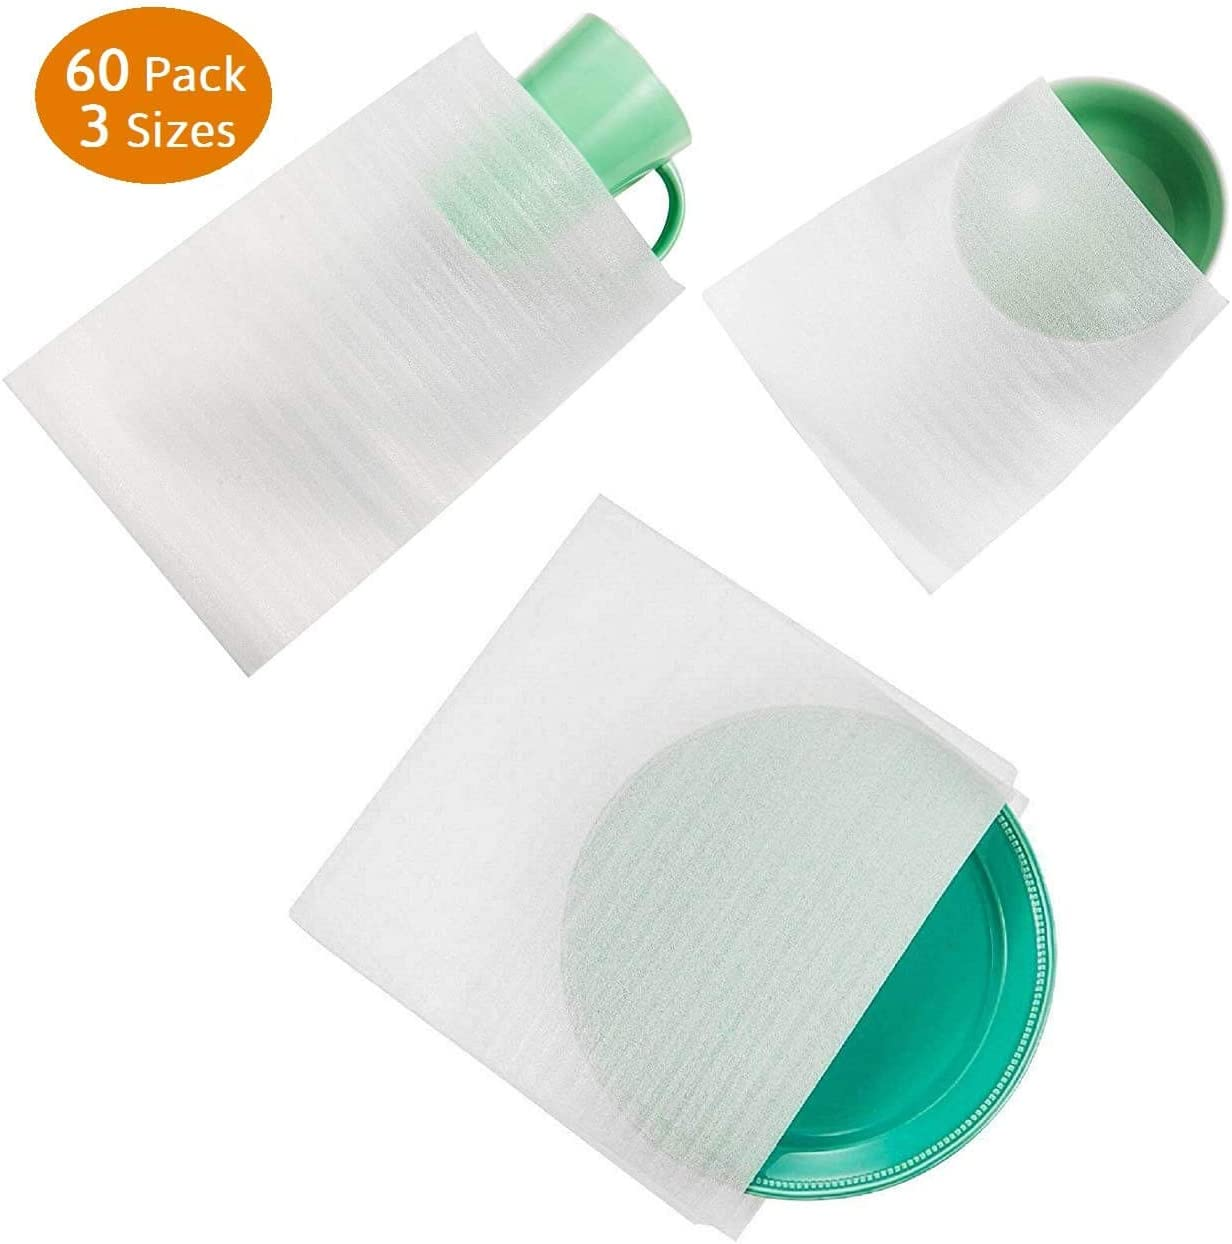 60 Cushion Foam Pouches, Moving Foam Wrap Pouches, Protect Mug, Cup, Glasses, China, and Dishes, Packing Supplies, Packing Cushioning Supplies for Moving: Office Products